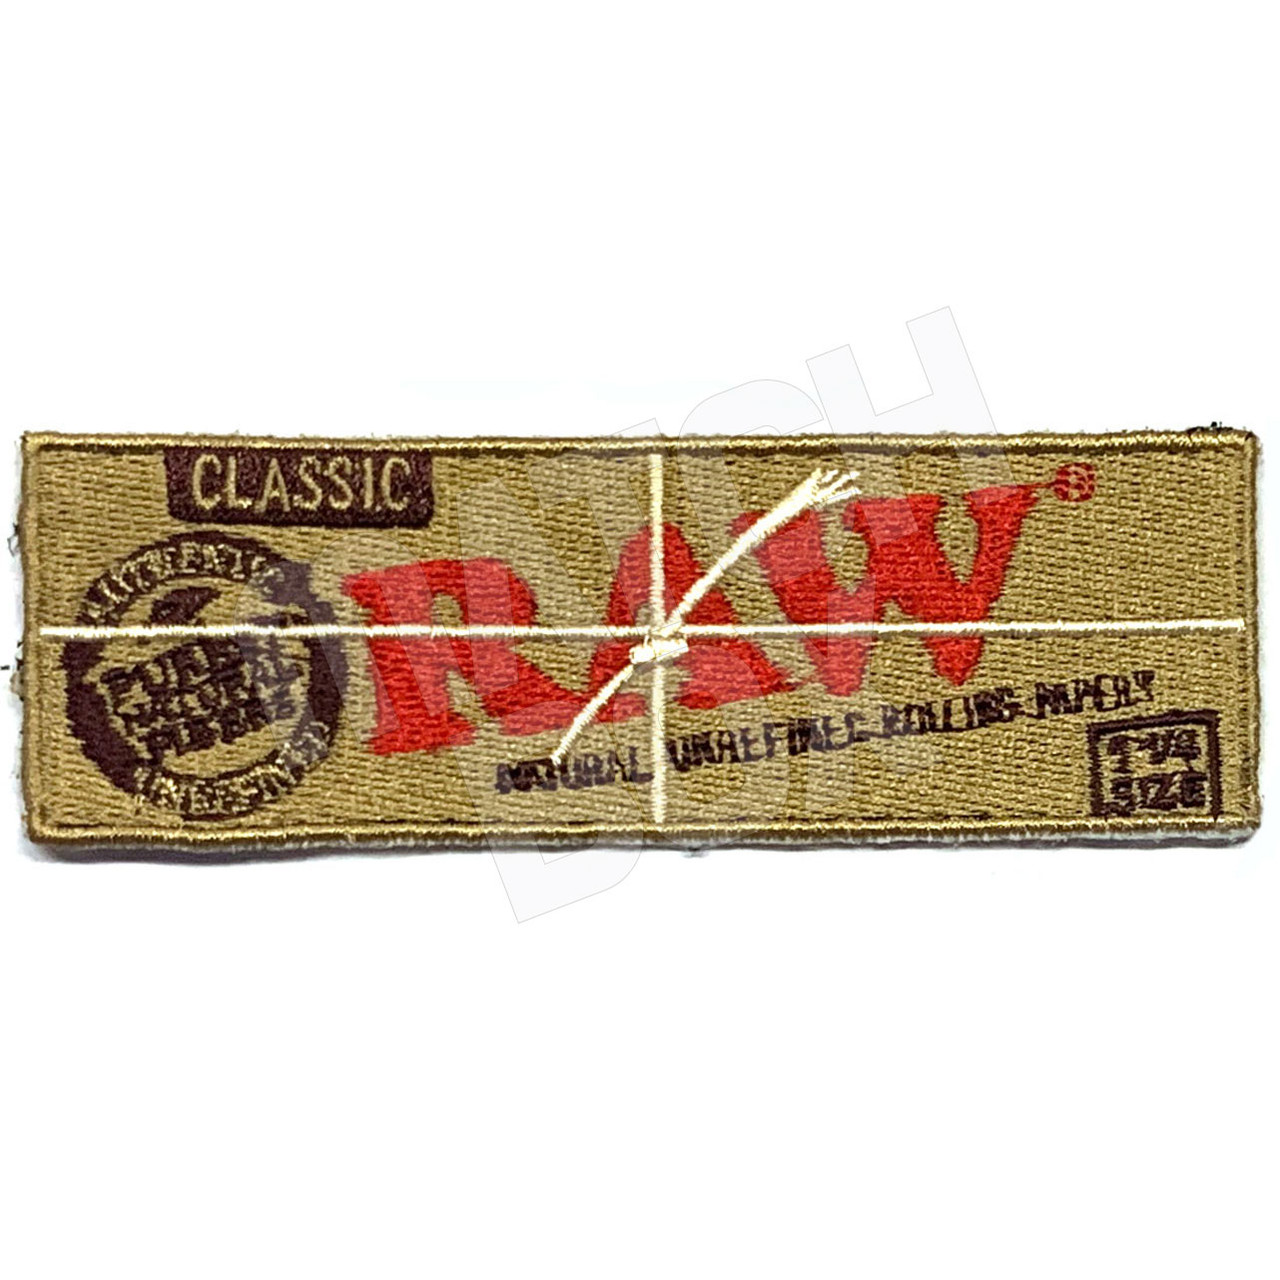 RAW Smokers Patch Collection - Classic Rolling Paper